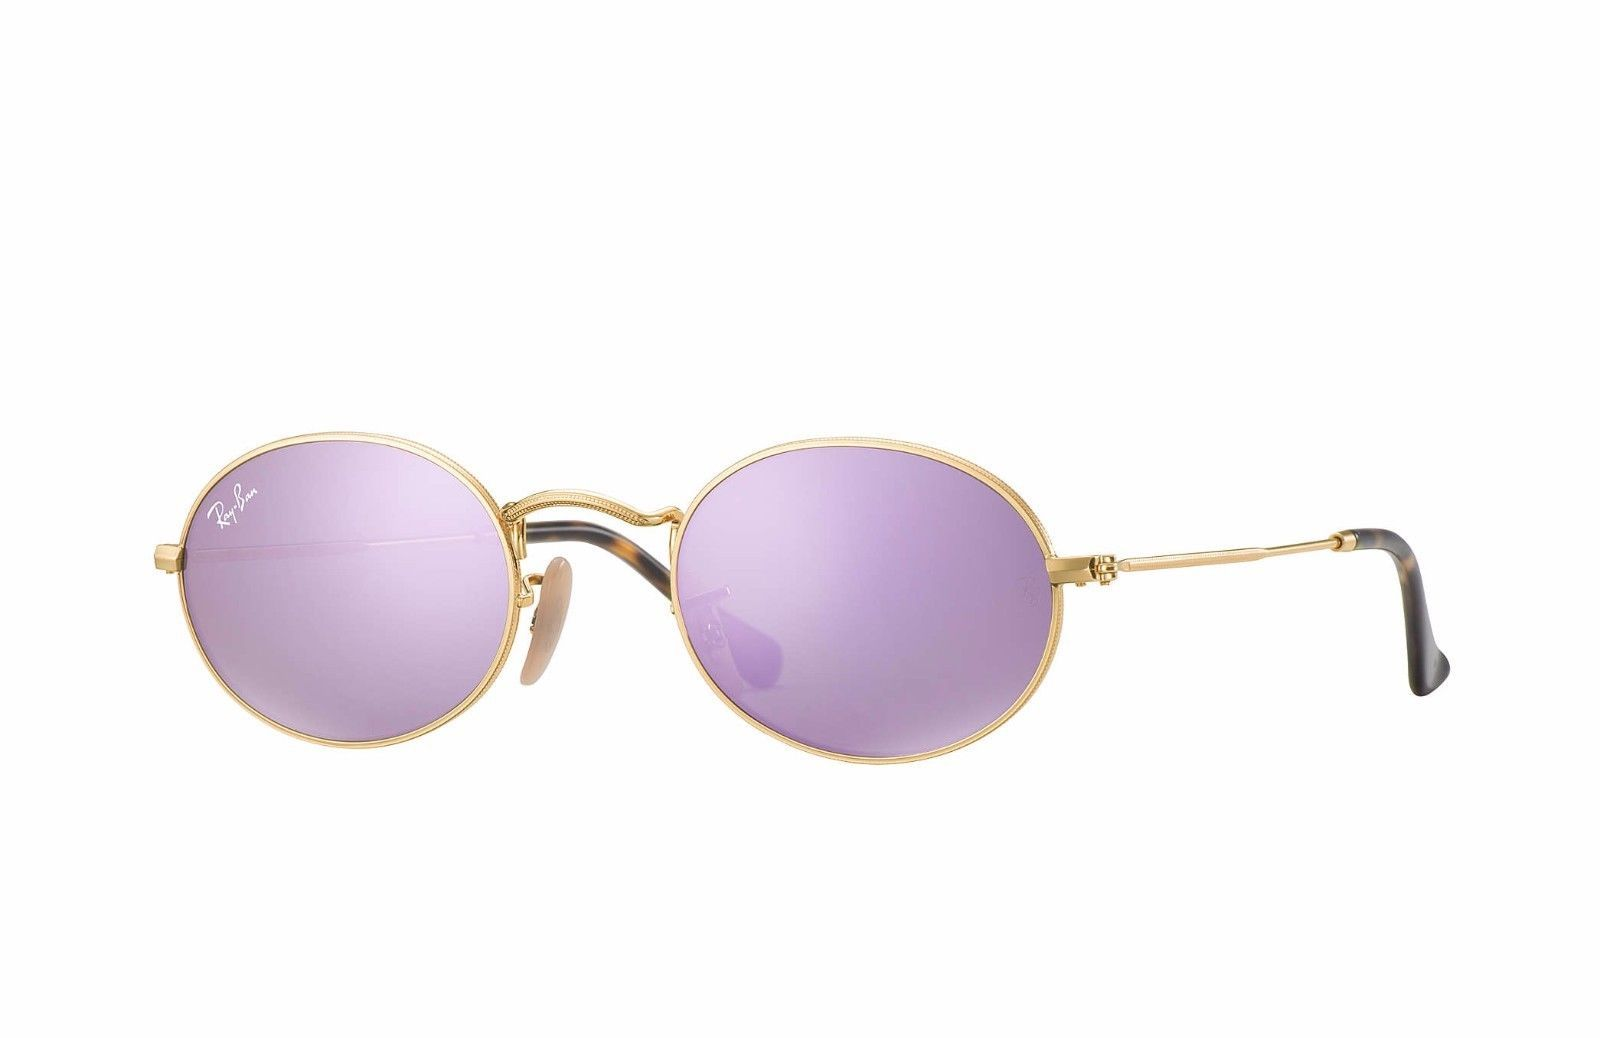 937340521a 57. 57. Previous. Authentic Ray Ban RB3547-N 001 8O Oval Gold Lilac  Mirrored Lens Sunglasses 51mm